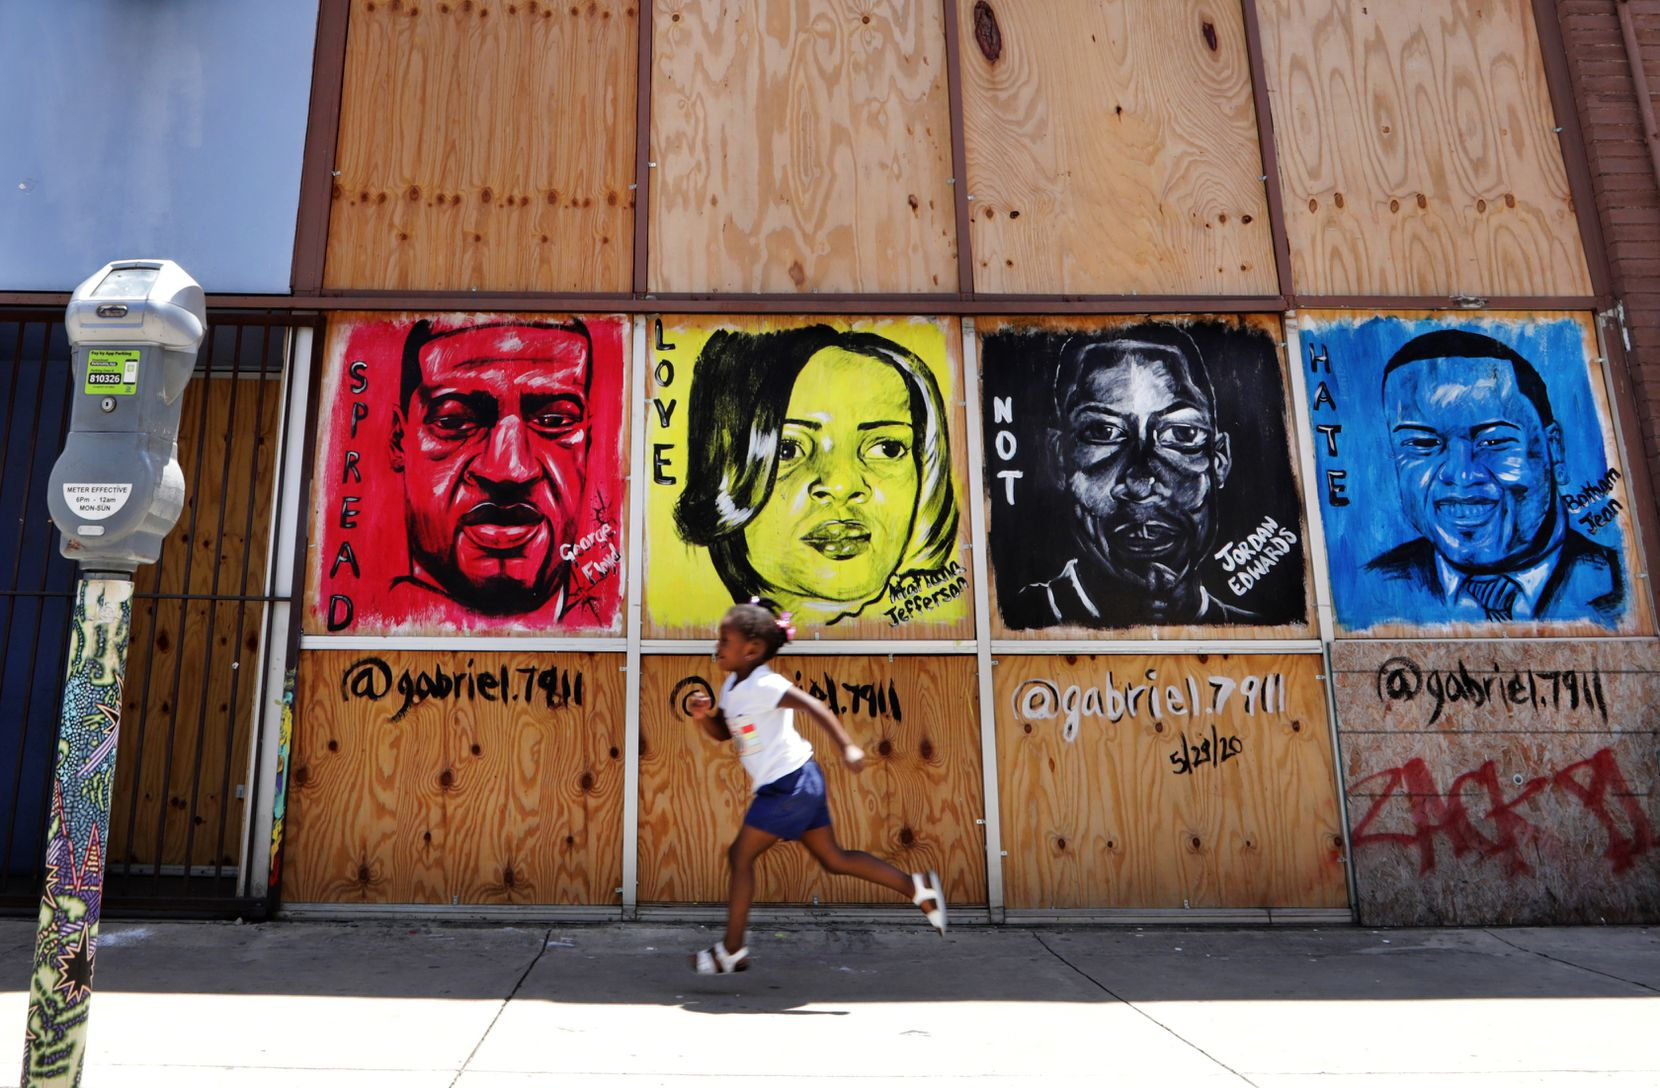 A mural painted in Deep Ellum days after George Floyd's death May 25 depicts, from left, Floyd, Atatiana Jefferson, Jordan Edwards and Botham Jean. Jefferson, Edwards and Jean were killed by North Texas police officers.